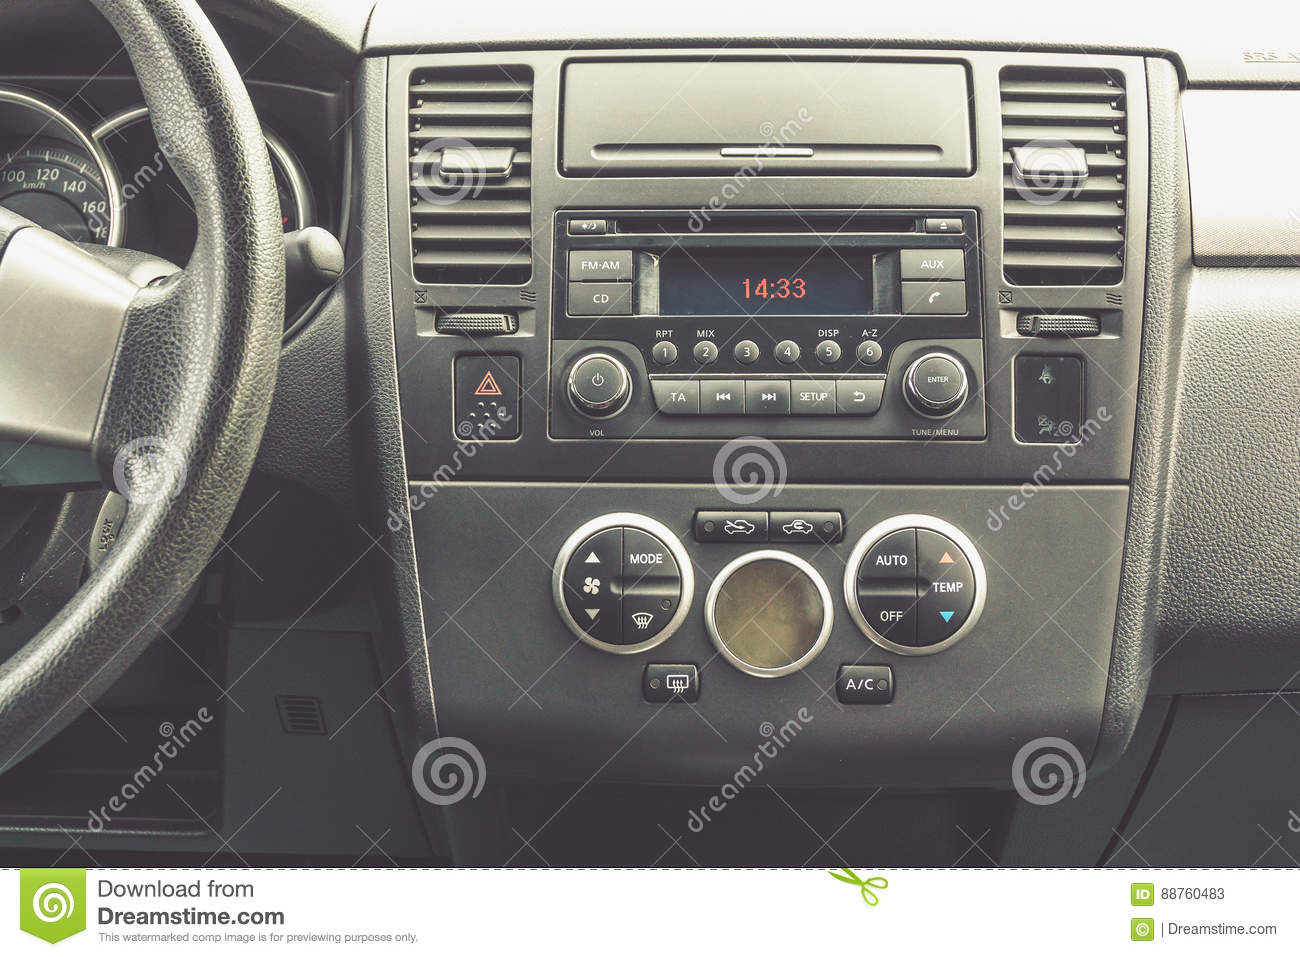 Interior view of vehicle. Modern technology car dashboard close up. Climate